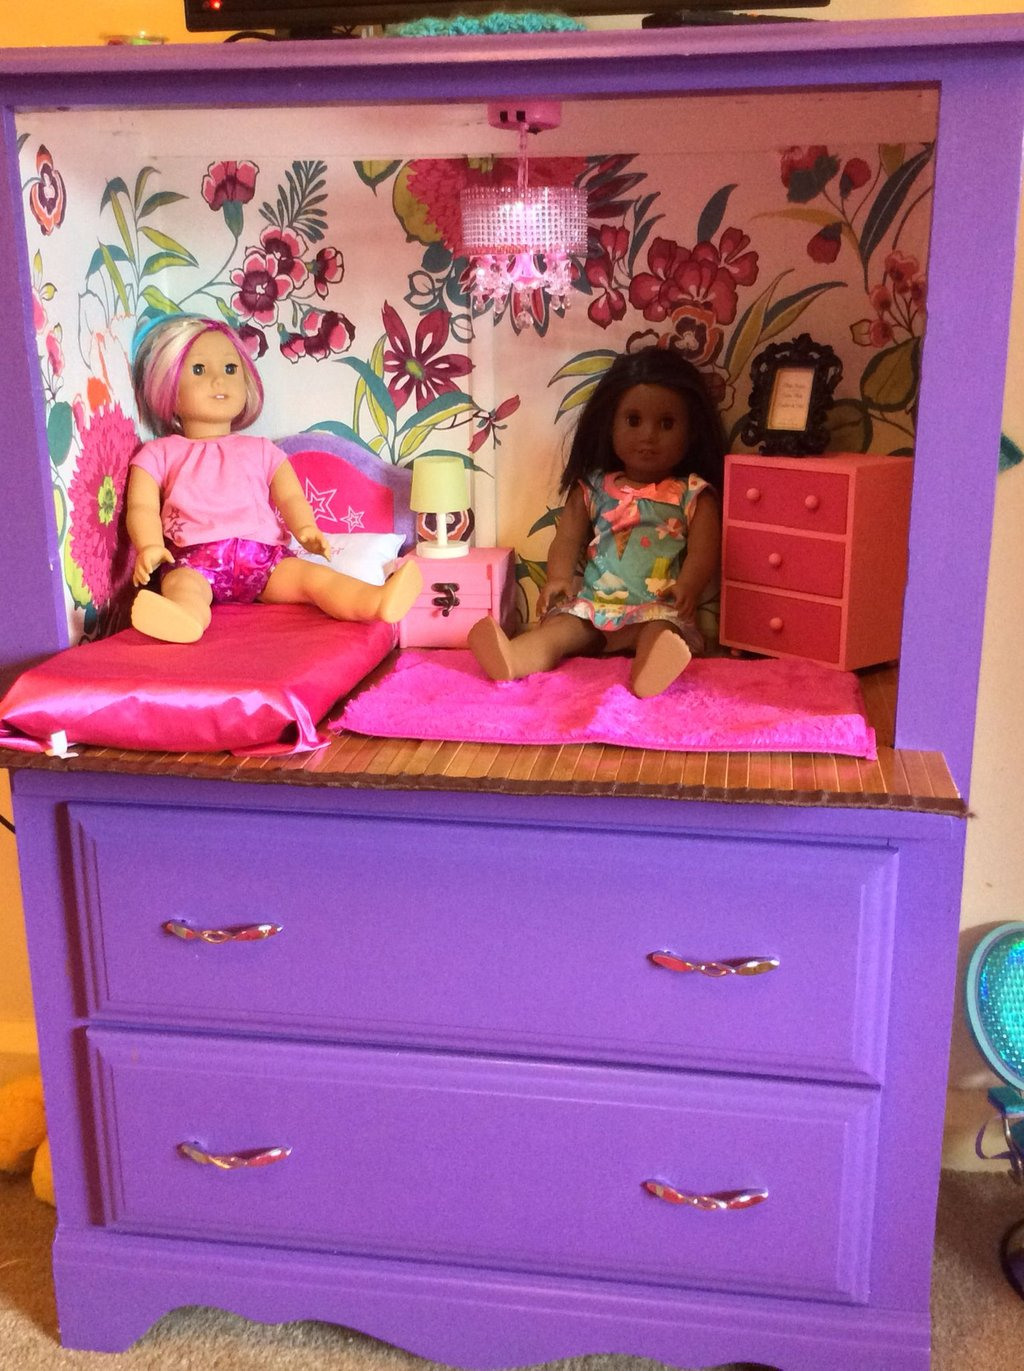 Dresser Cycled Perfect Doll Room Storage Mirrored Nightstand And Dresser